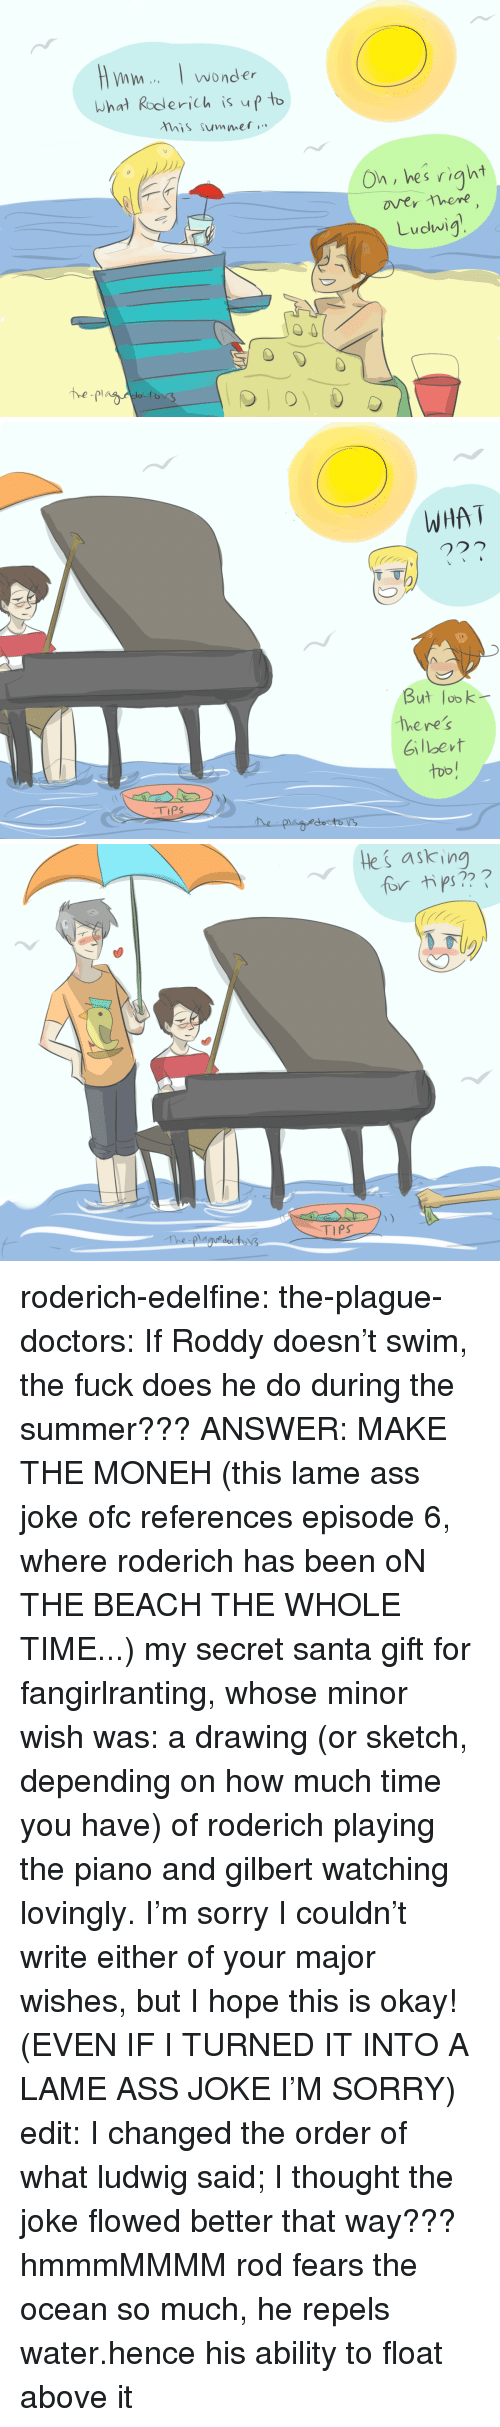 This Is Okay: wonder  What Roderich is up t  his summet  On, hes right  Ludwig   WHA T  But lobk  here's  Gilbevt  too!   ki askin  for tips?  TIPS roderich-edelfine:  the-plague-doctors: If Roddy doesn't swim, the fuck does he do during the summer??? ANSWER: MAKE THE MONEH (this lame ass joke ofc references episode 6, where roderich has been oN THE BEACH THE WHOLE TIME...) my secret santa gift for fangirlranting, whose minor wish was: a drawing (or sketch, depending on how much time you have) of roderich playing the piano and gilbert watching lovingly. I'm sorry I couldn't write either of your major wishes, but I hope this is okay! (EVEN IF I TURNED IT INTO A LAME ASS JOKE I'M SORRY) edit: I changed the order of what ludwig said; I thought the joke flowed better that way??? hmmmMMMM  rod fears the ocean so much, he repels water.hence his ability to float above it